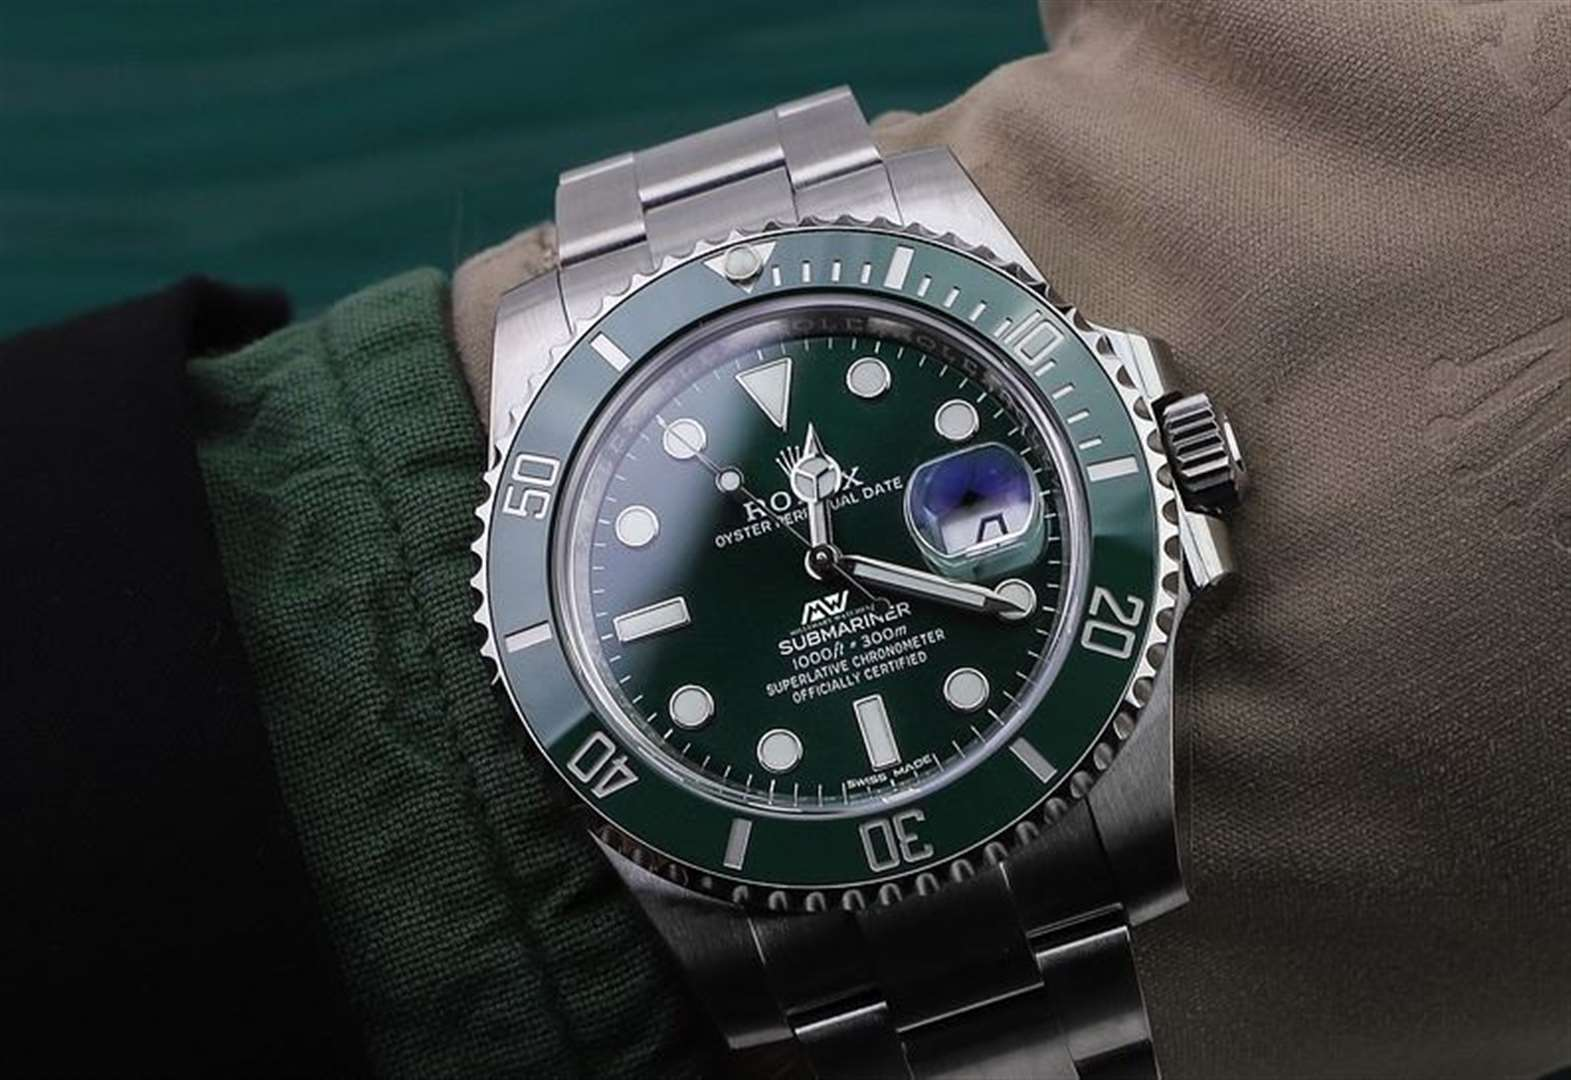 Rolex theft suspect accused of trying to flog watch